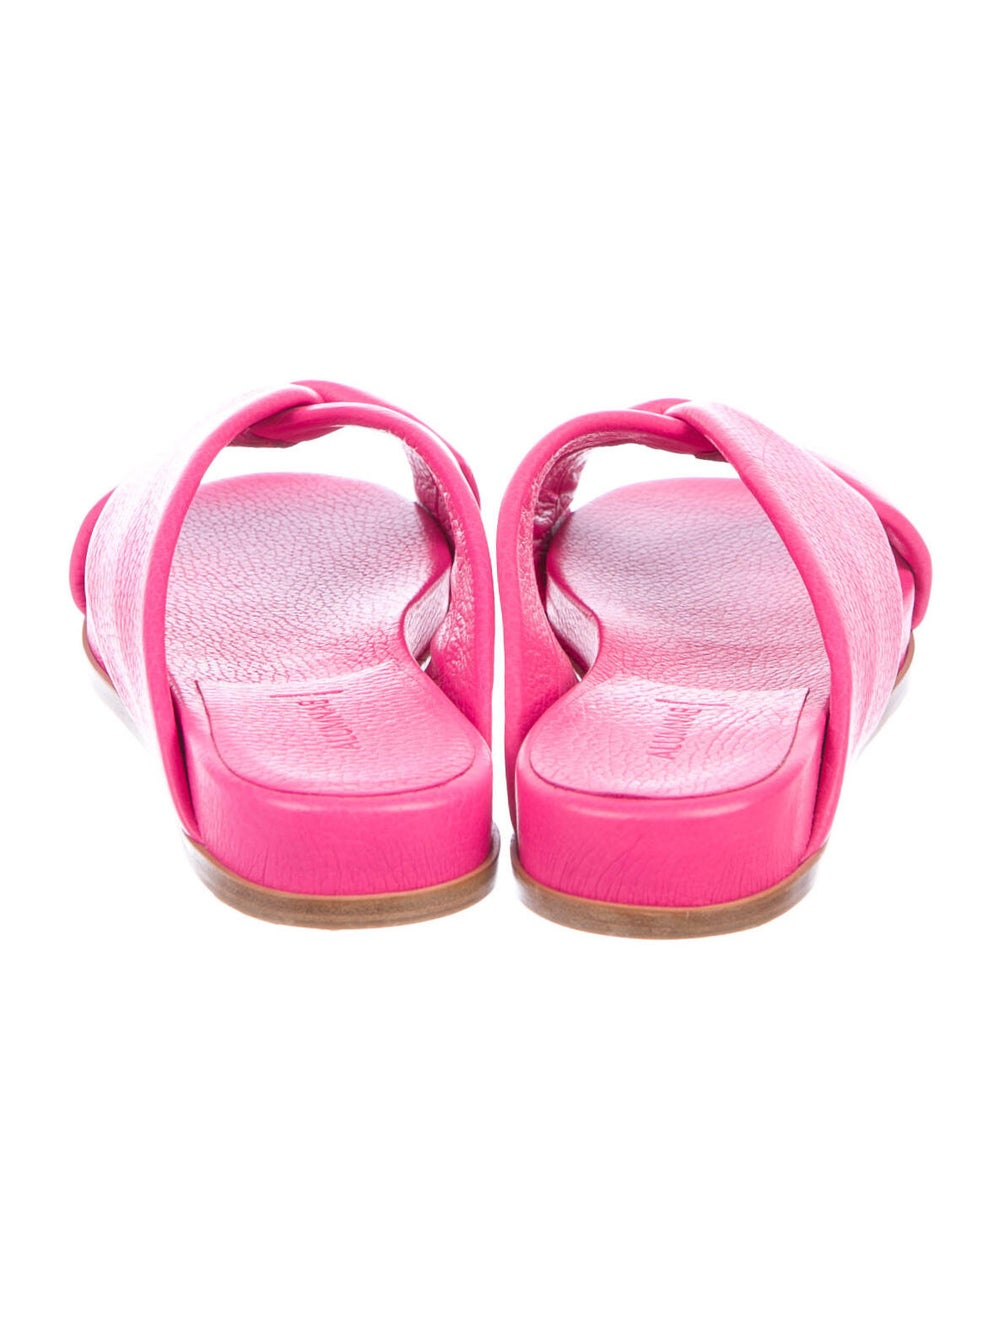 Alumnae Leather Slides Pink - image 4